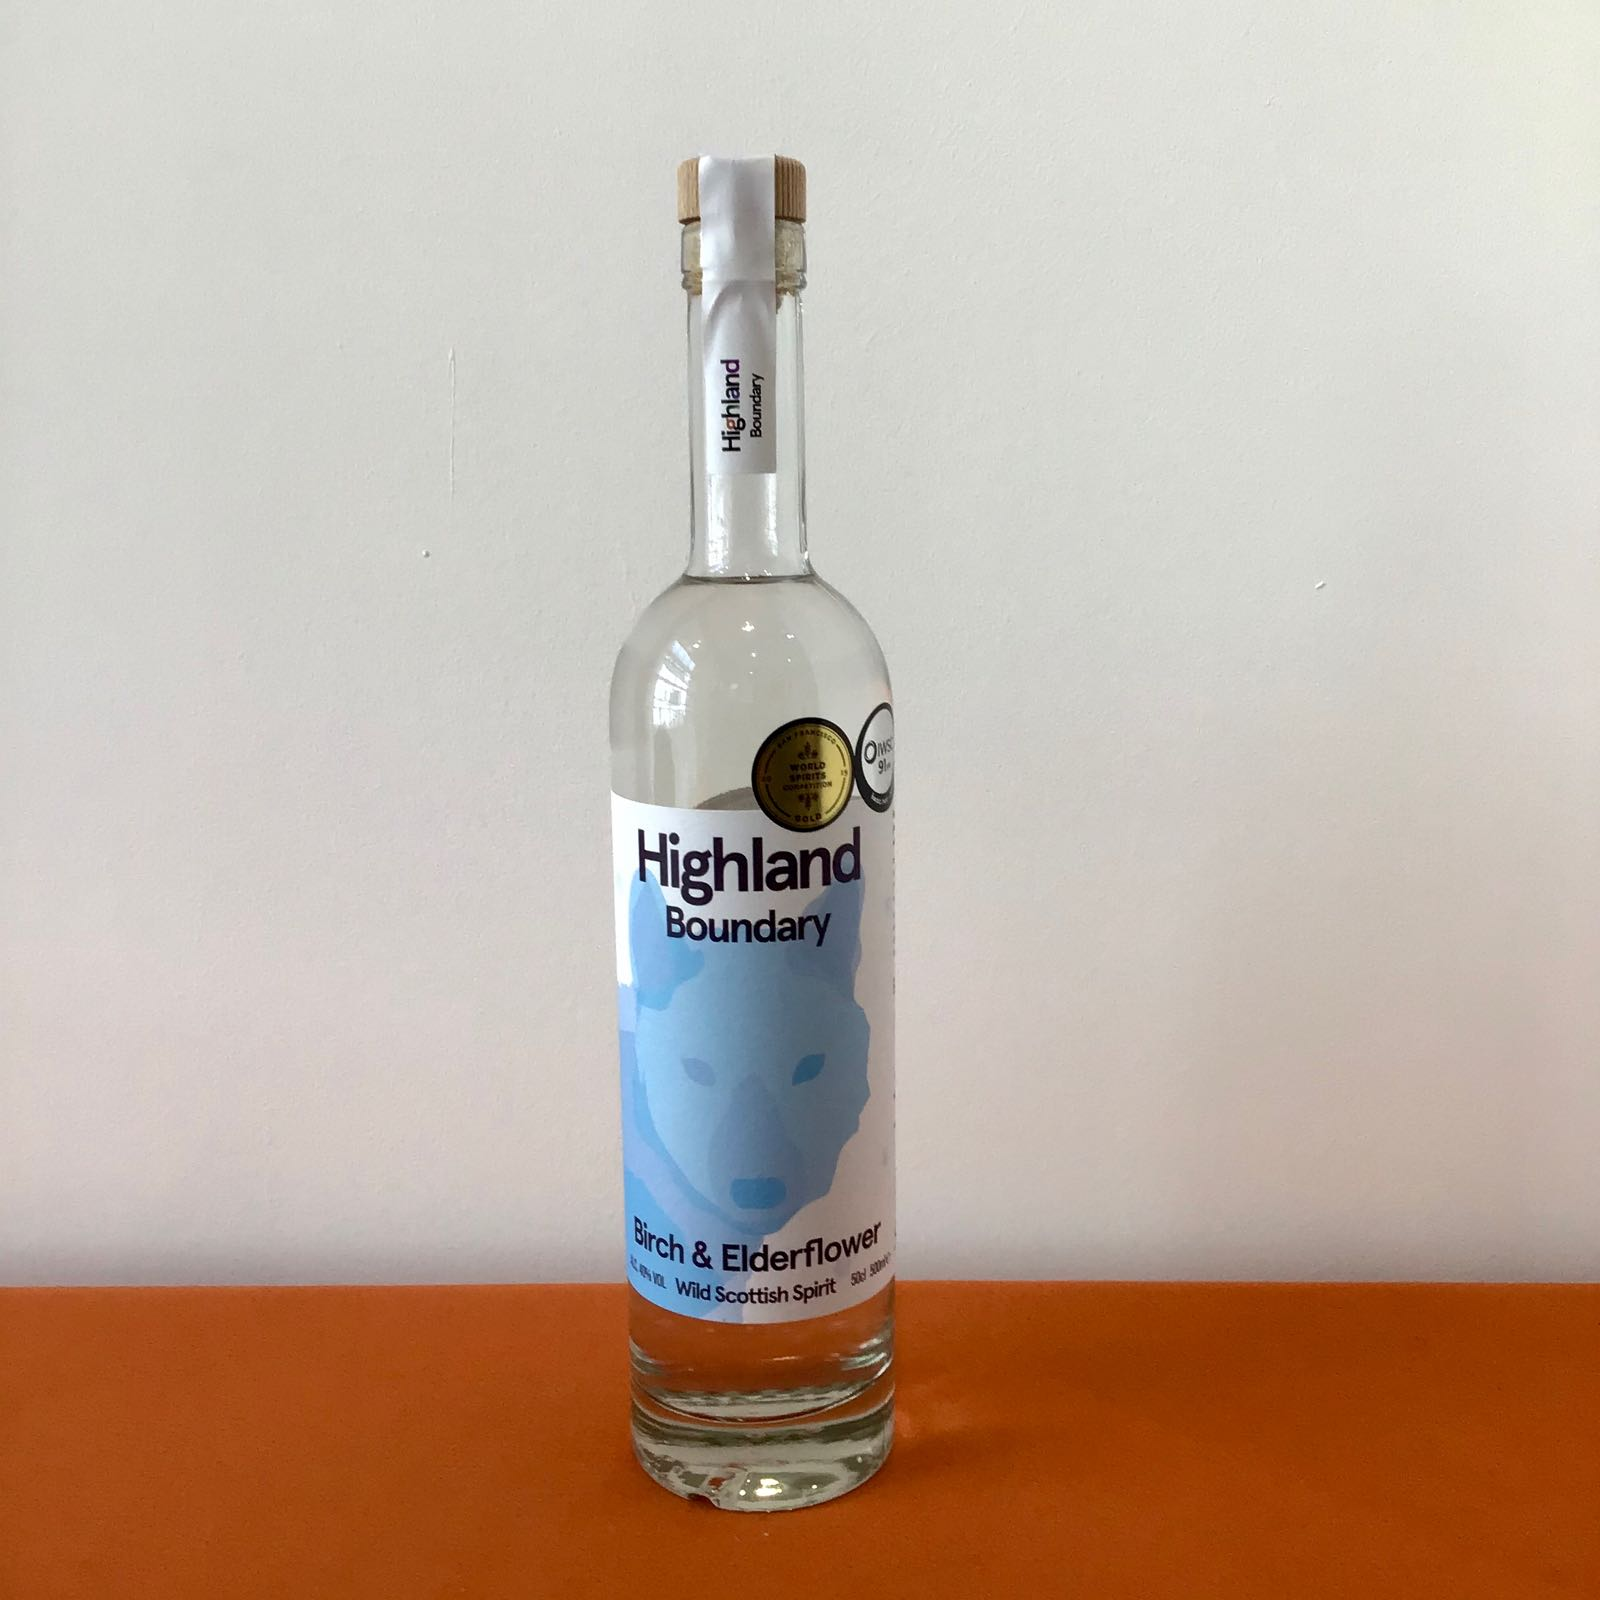 Highland Boundary: Birch & Elderflower Spirit